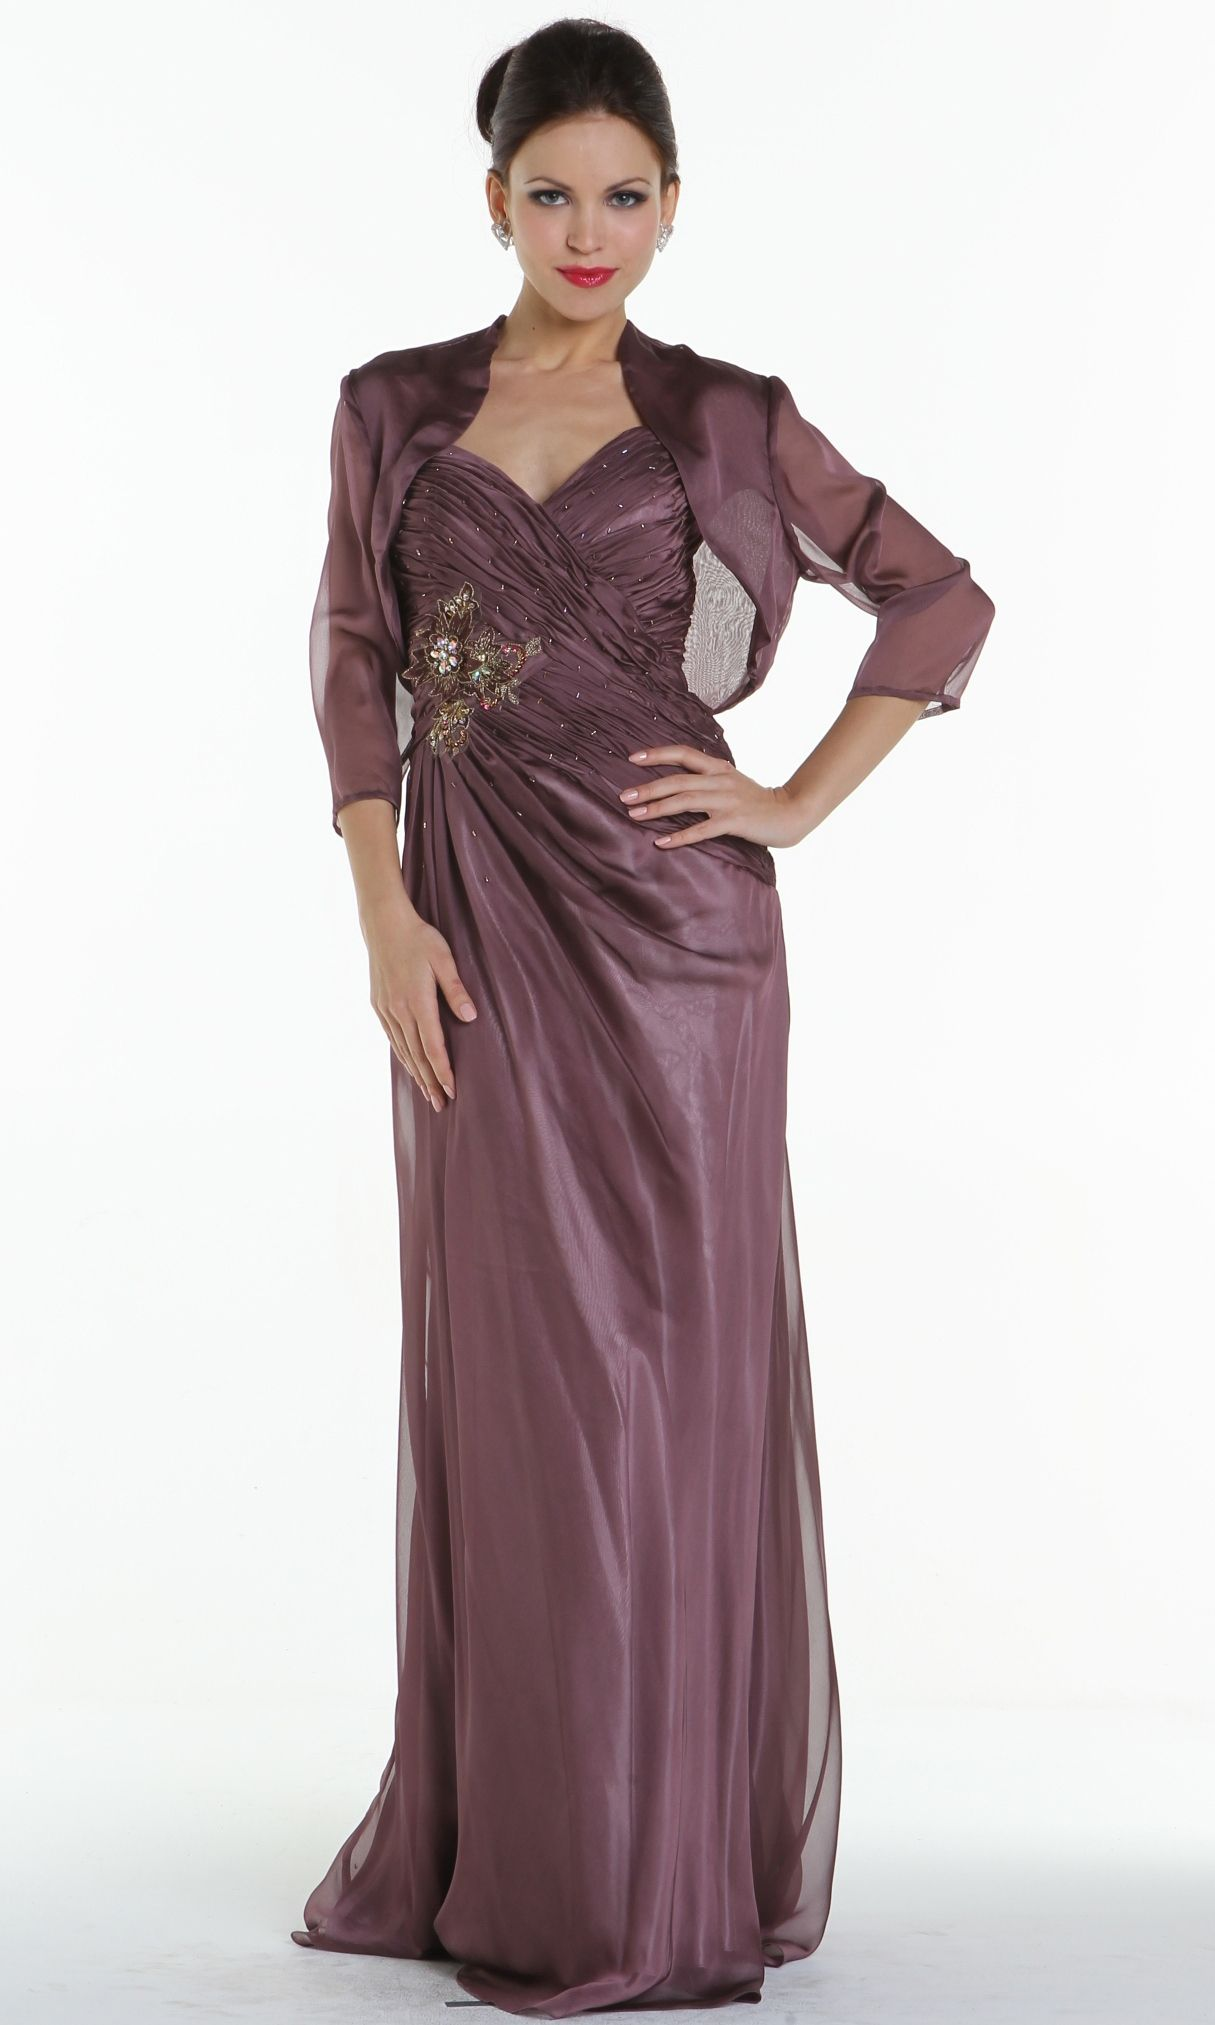 Simple sweetheart full length gown with embellishment along the